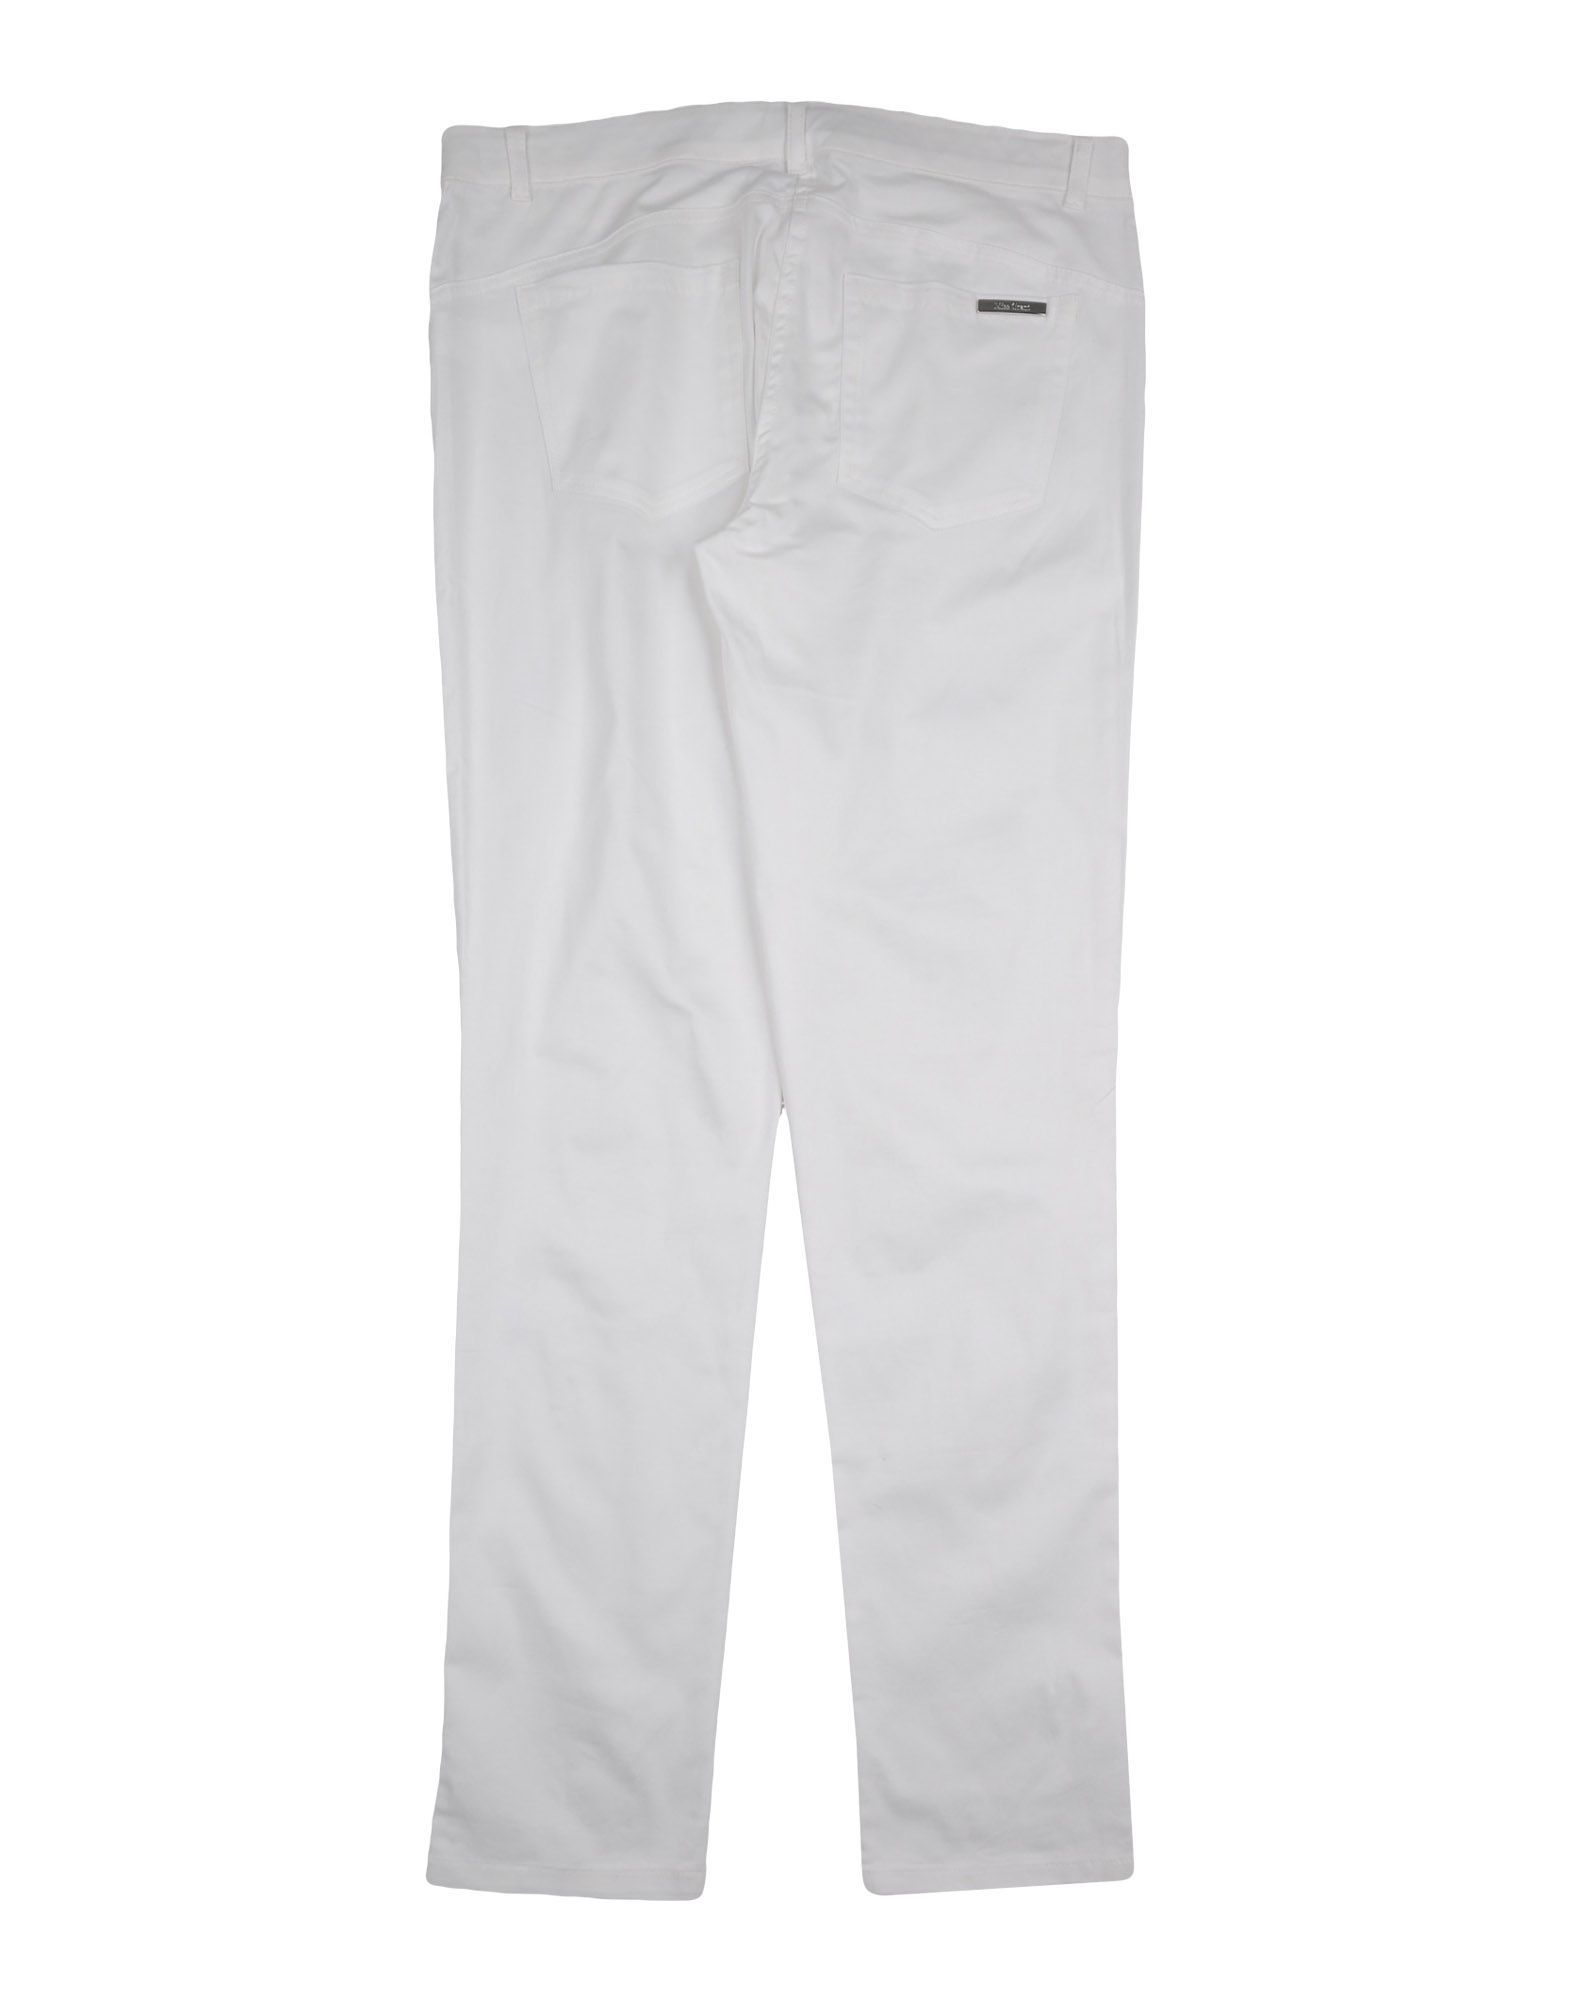 TROUSERS Miss Grant White Girl Cotton